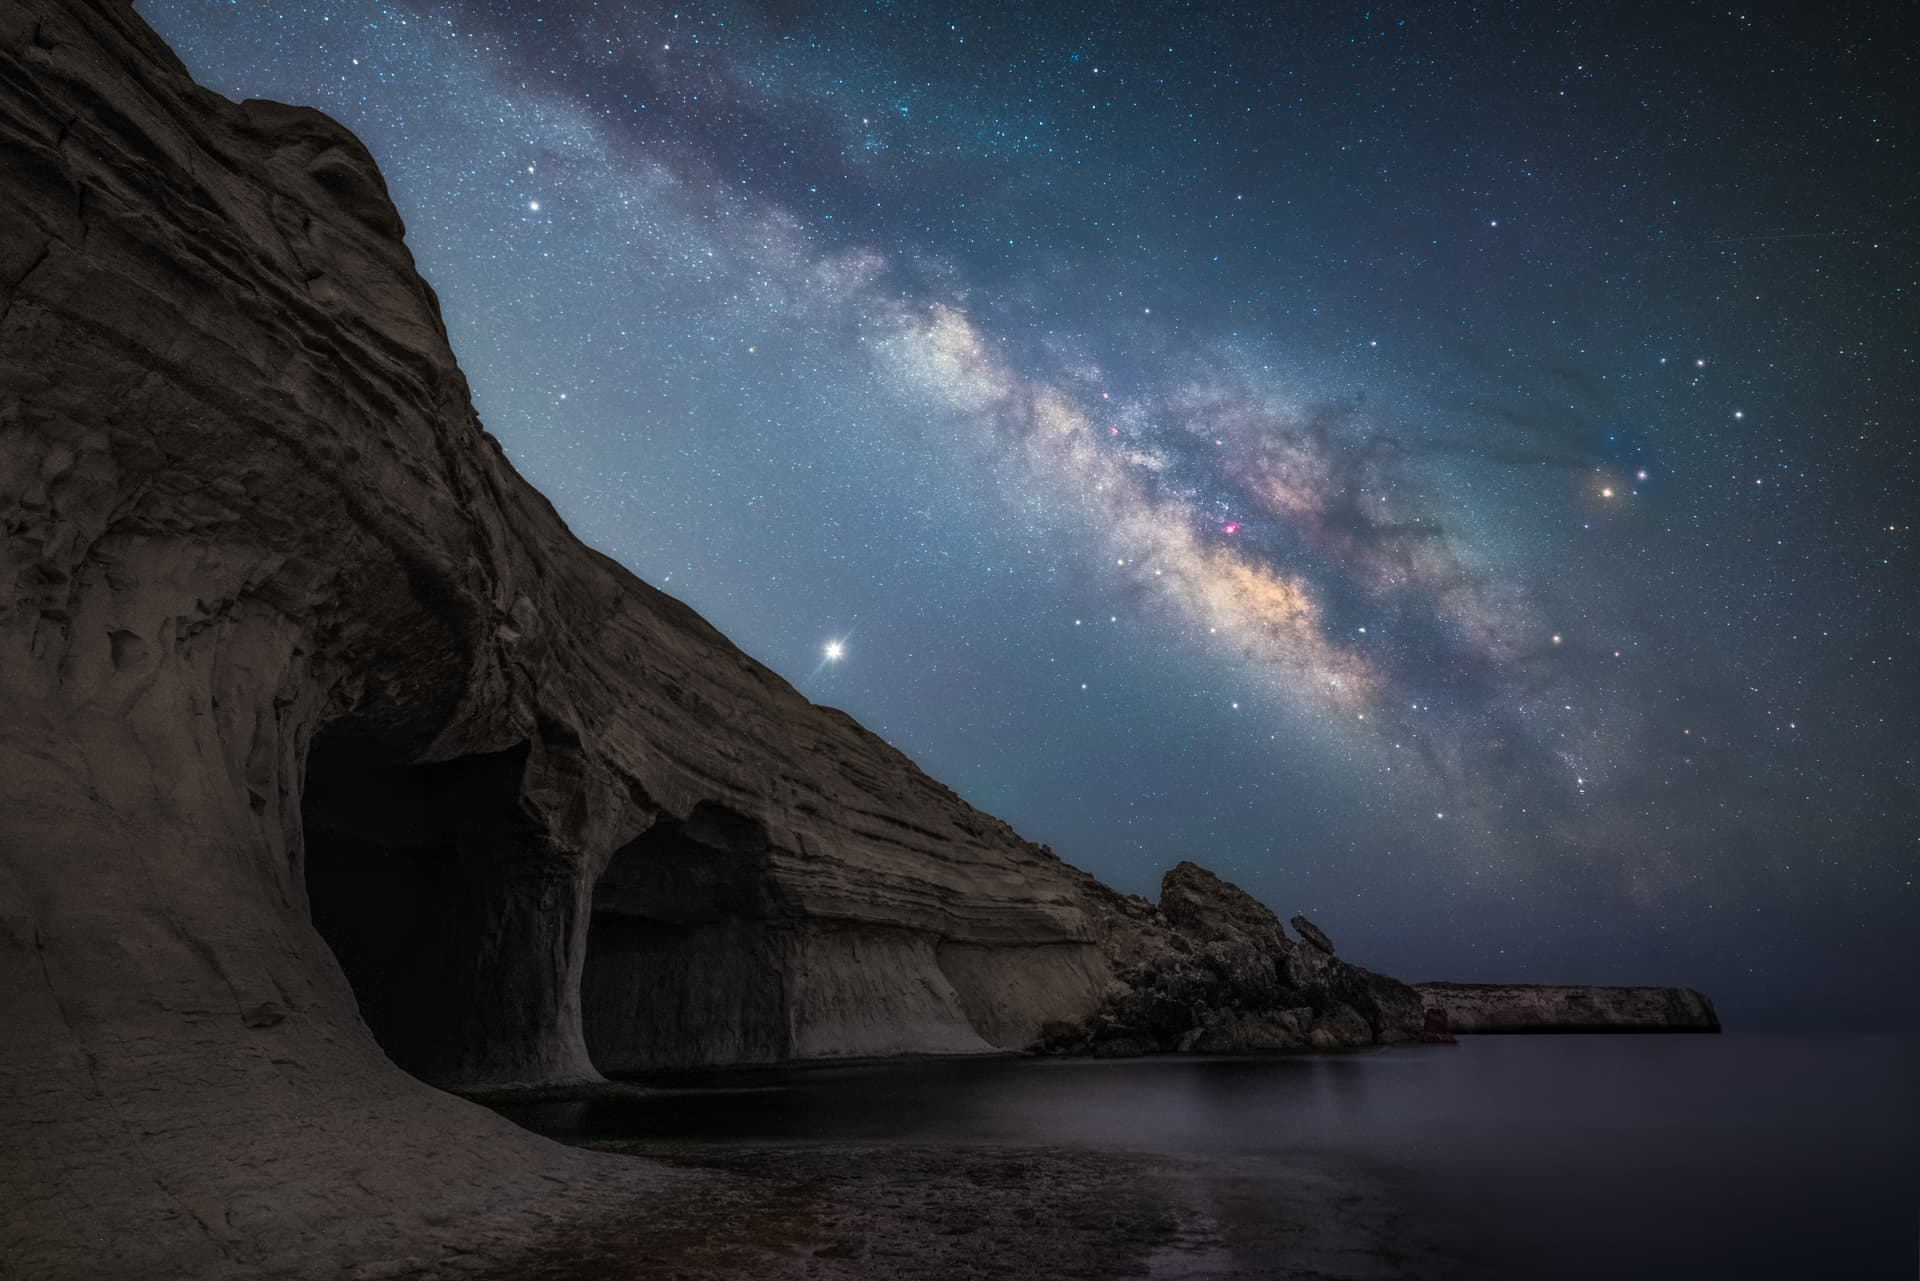 Best milky way photograph in Europe